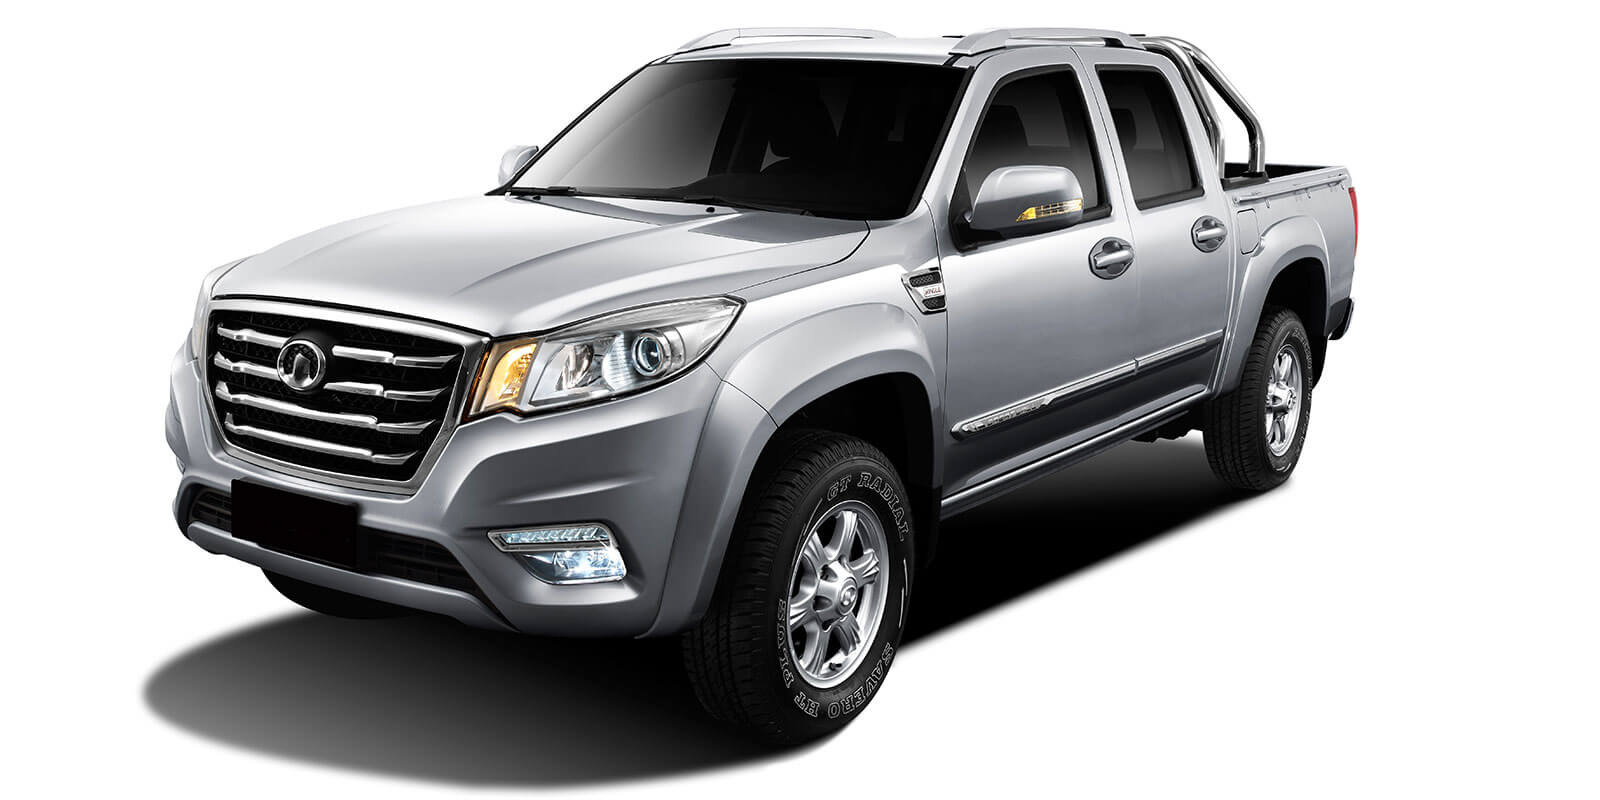 Haval-Great Wall wants 70 dealers nationwide